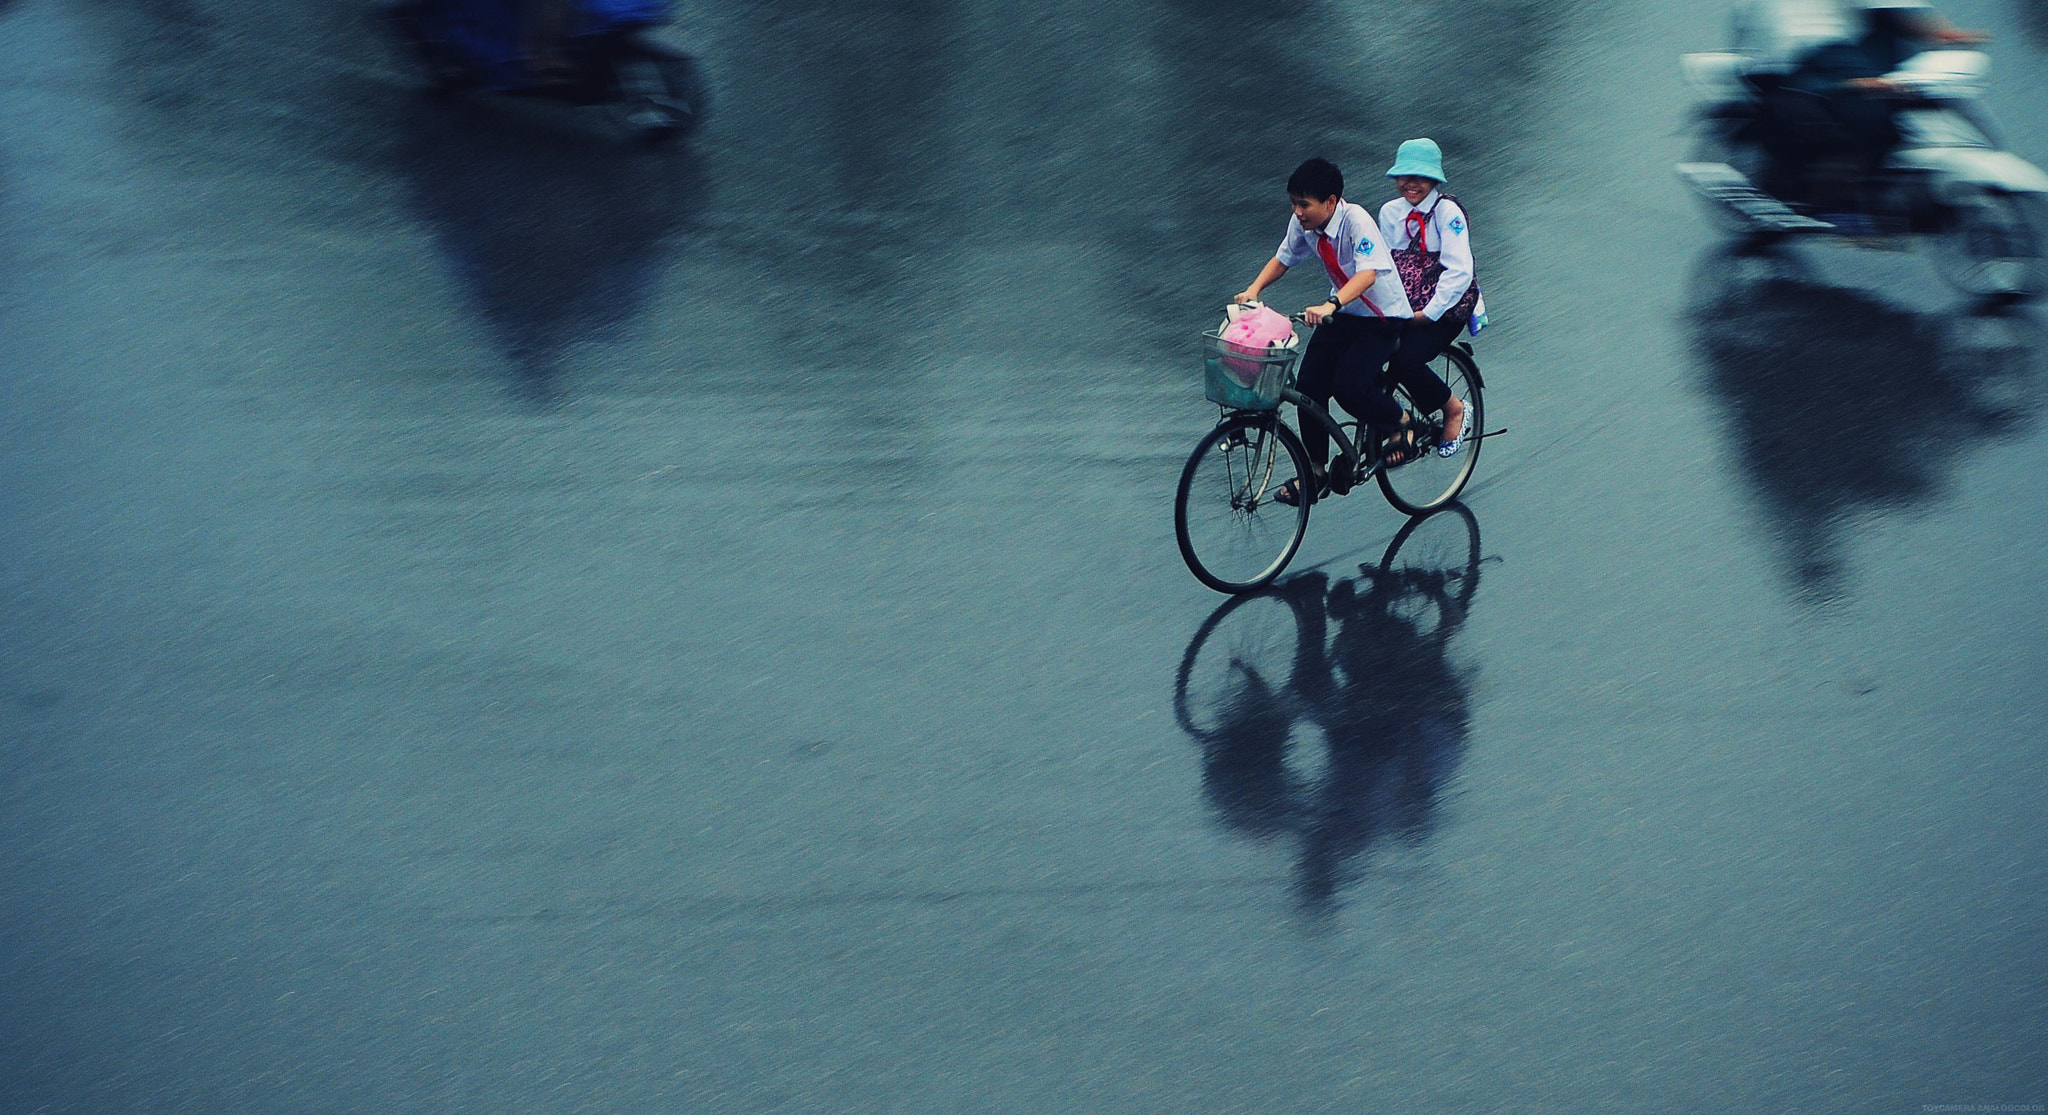 Photograph Rainy day by Tuấn Anh on 500px